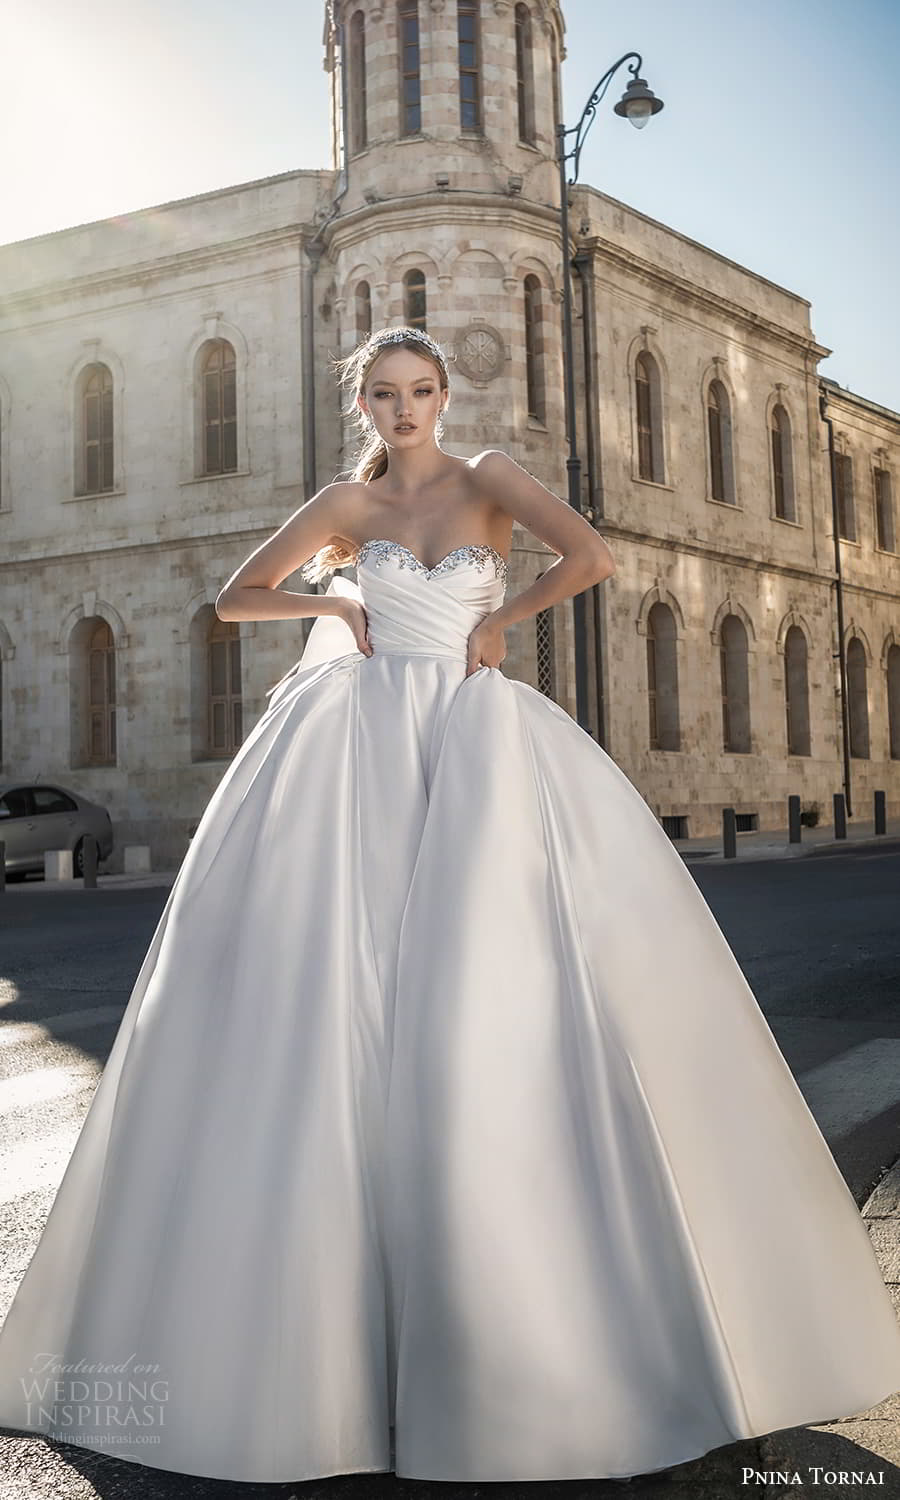 pnina tornai 2022 love bridal strapless embellished sweetheart neckline ruched bodice minimalist a line ball gown wedding dress chapel train bow back (3) mv